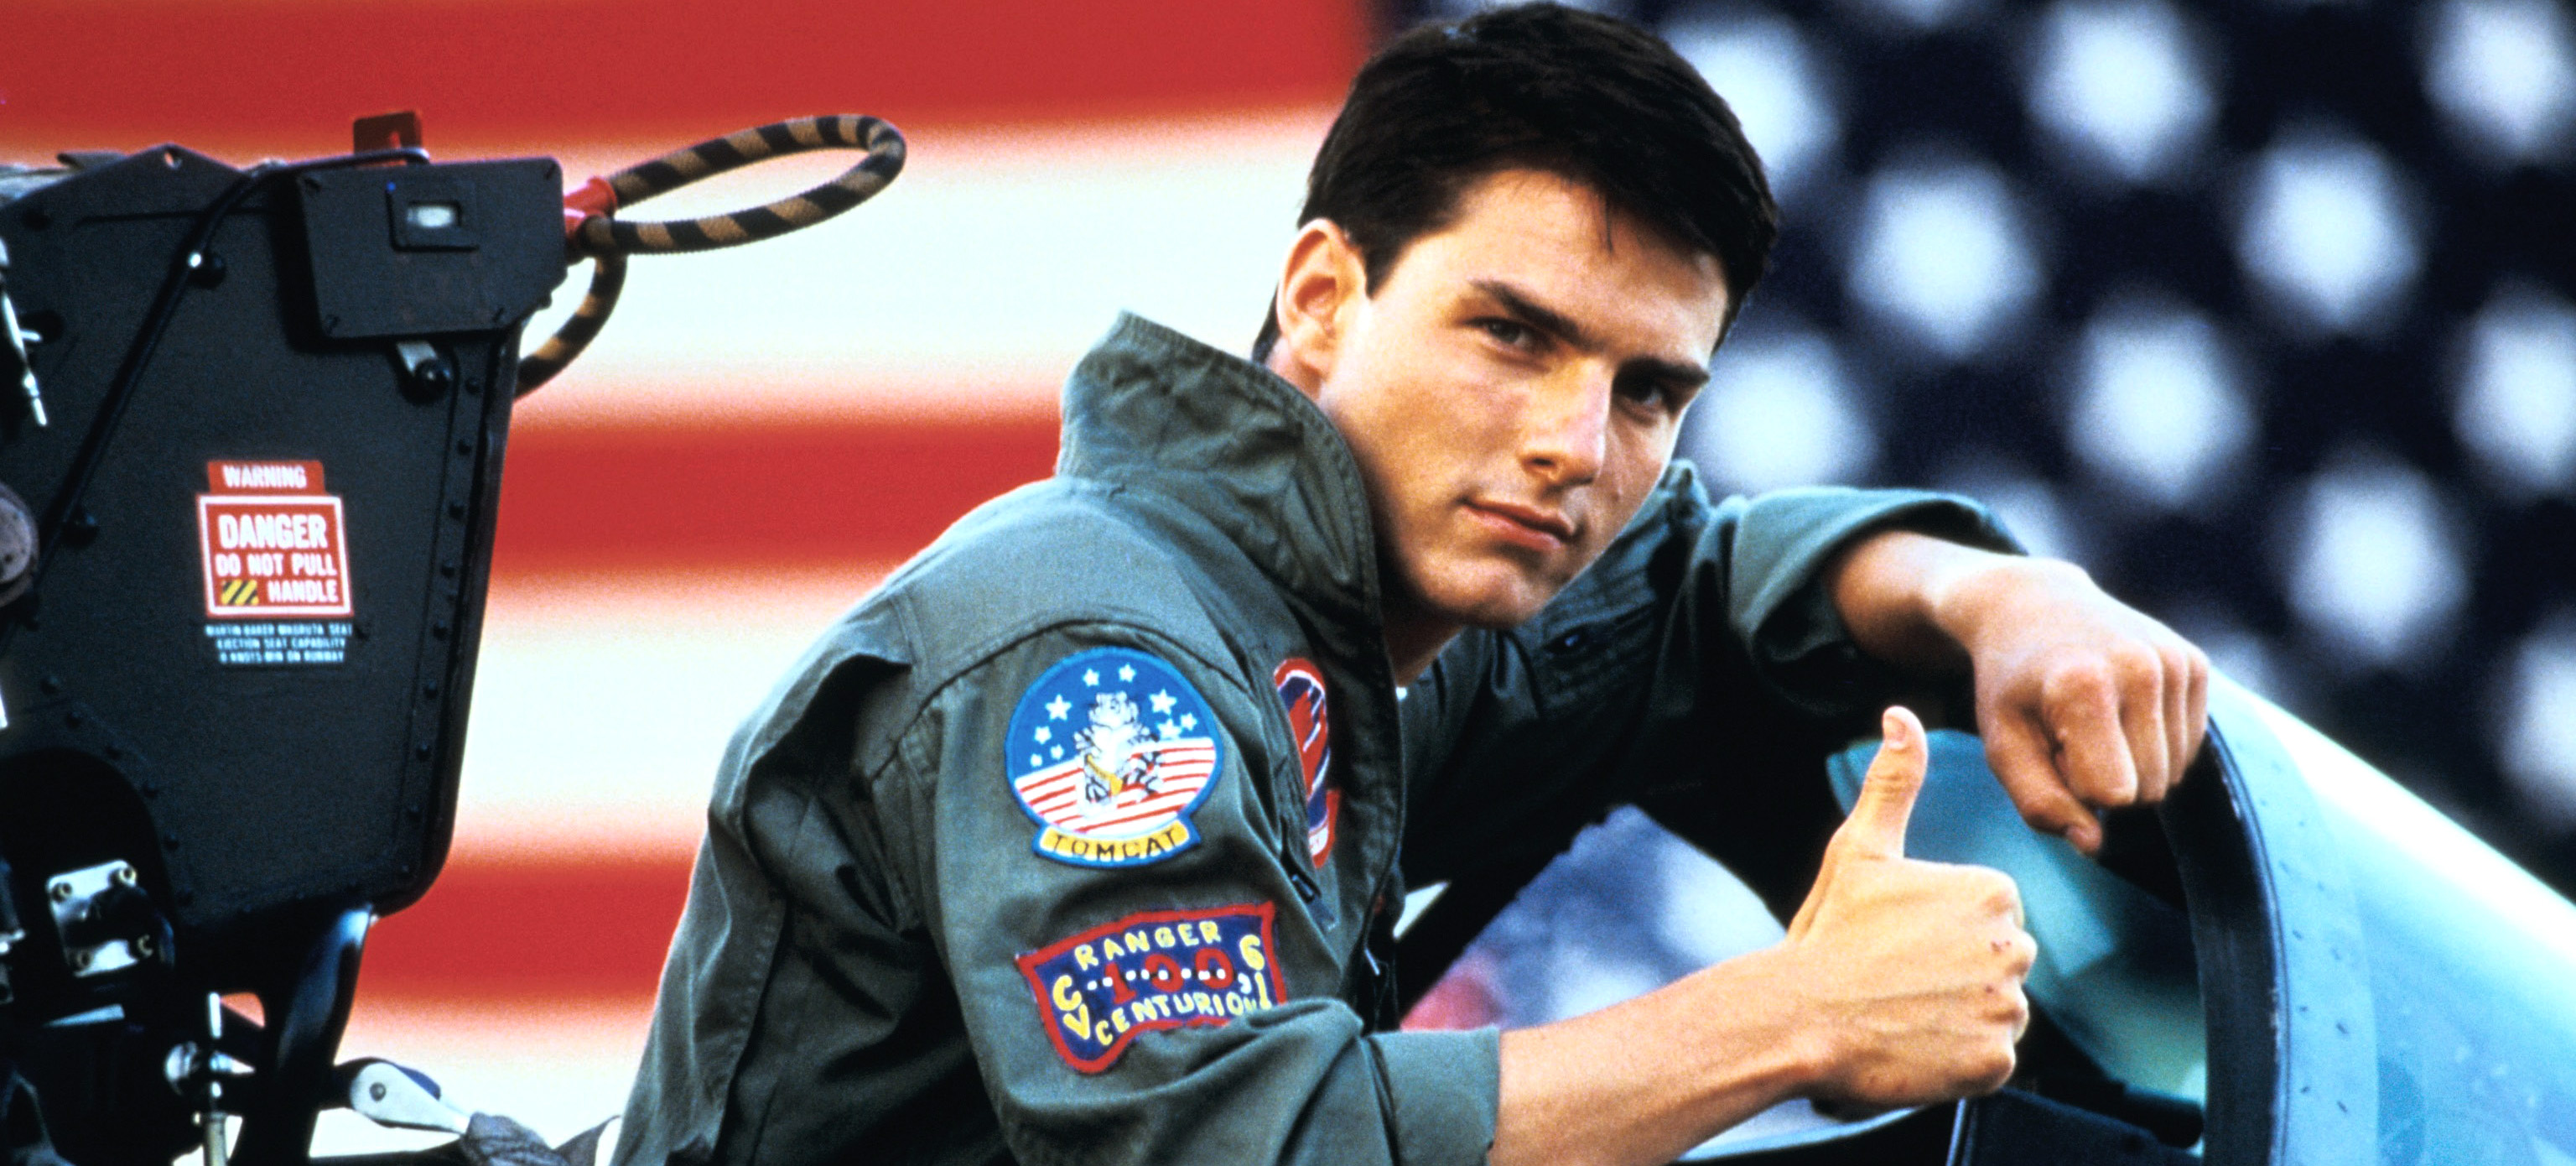 It's Official... Top Gun is 30 years old!